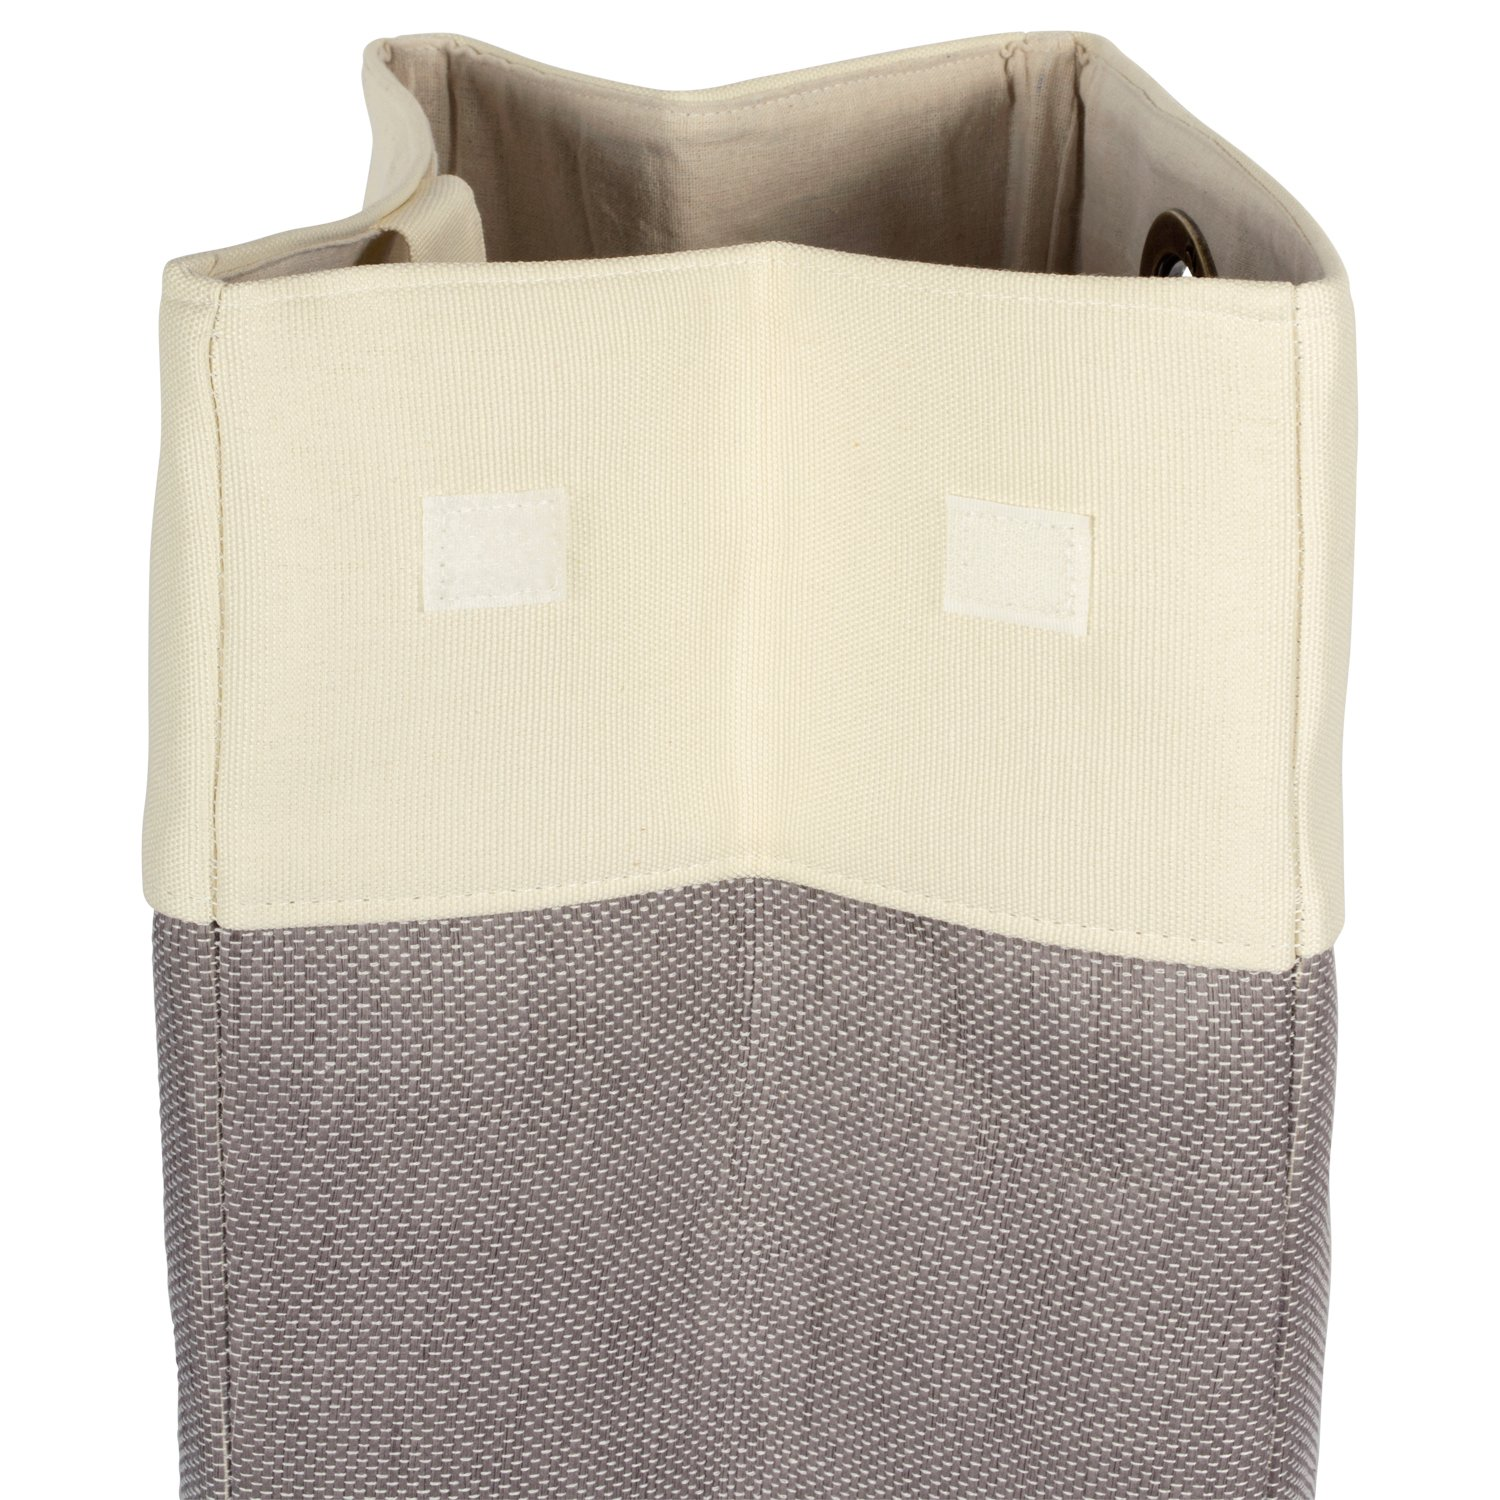 For Clean and Drity Clothes and Home Organization Gray Colorblock CAMZ38293 Assorted Set of 2 Dorm DII Heavy Duty Canvas Laundry Basket or Bin Perfect In Your Bedroom Closet Nursey Laundry Room